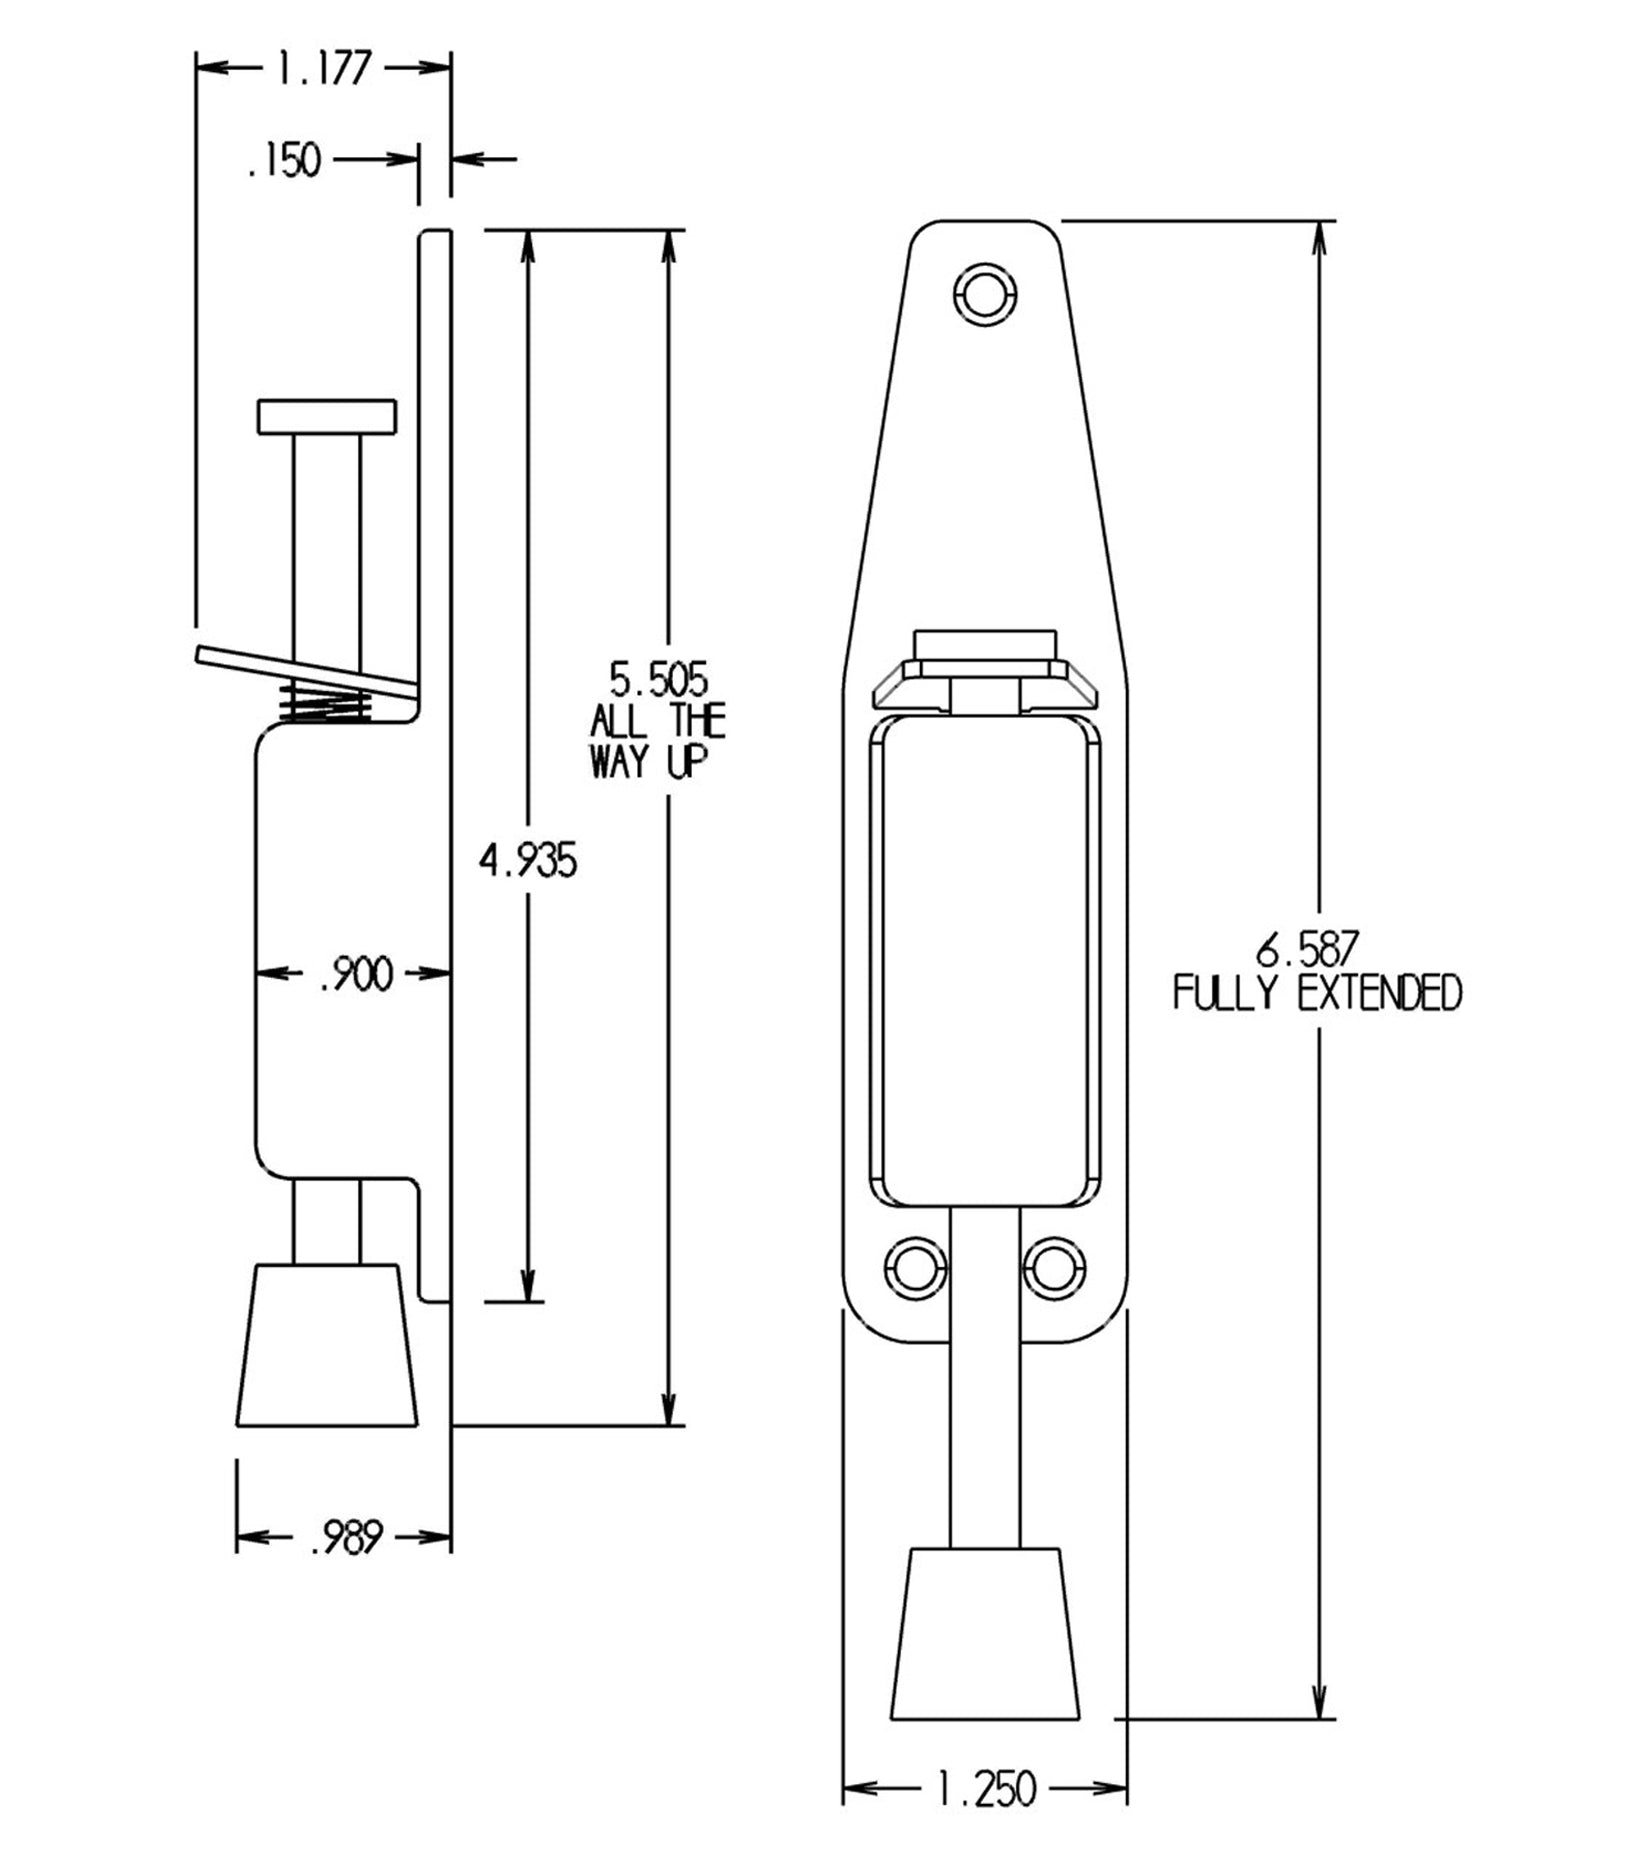 FPL DH5 Spring Loaded Door Stop Specs